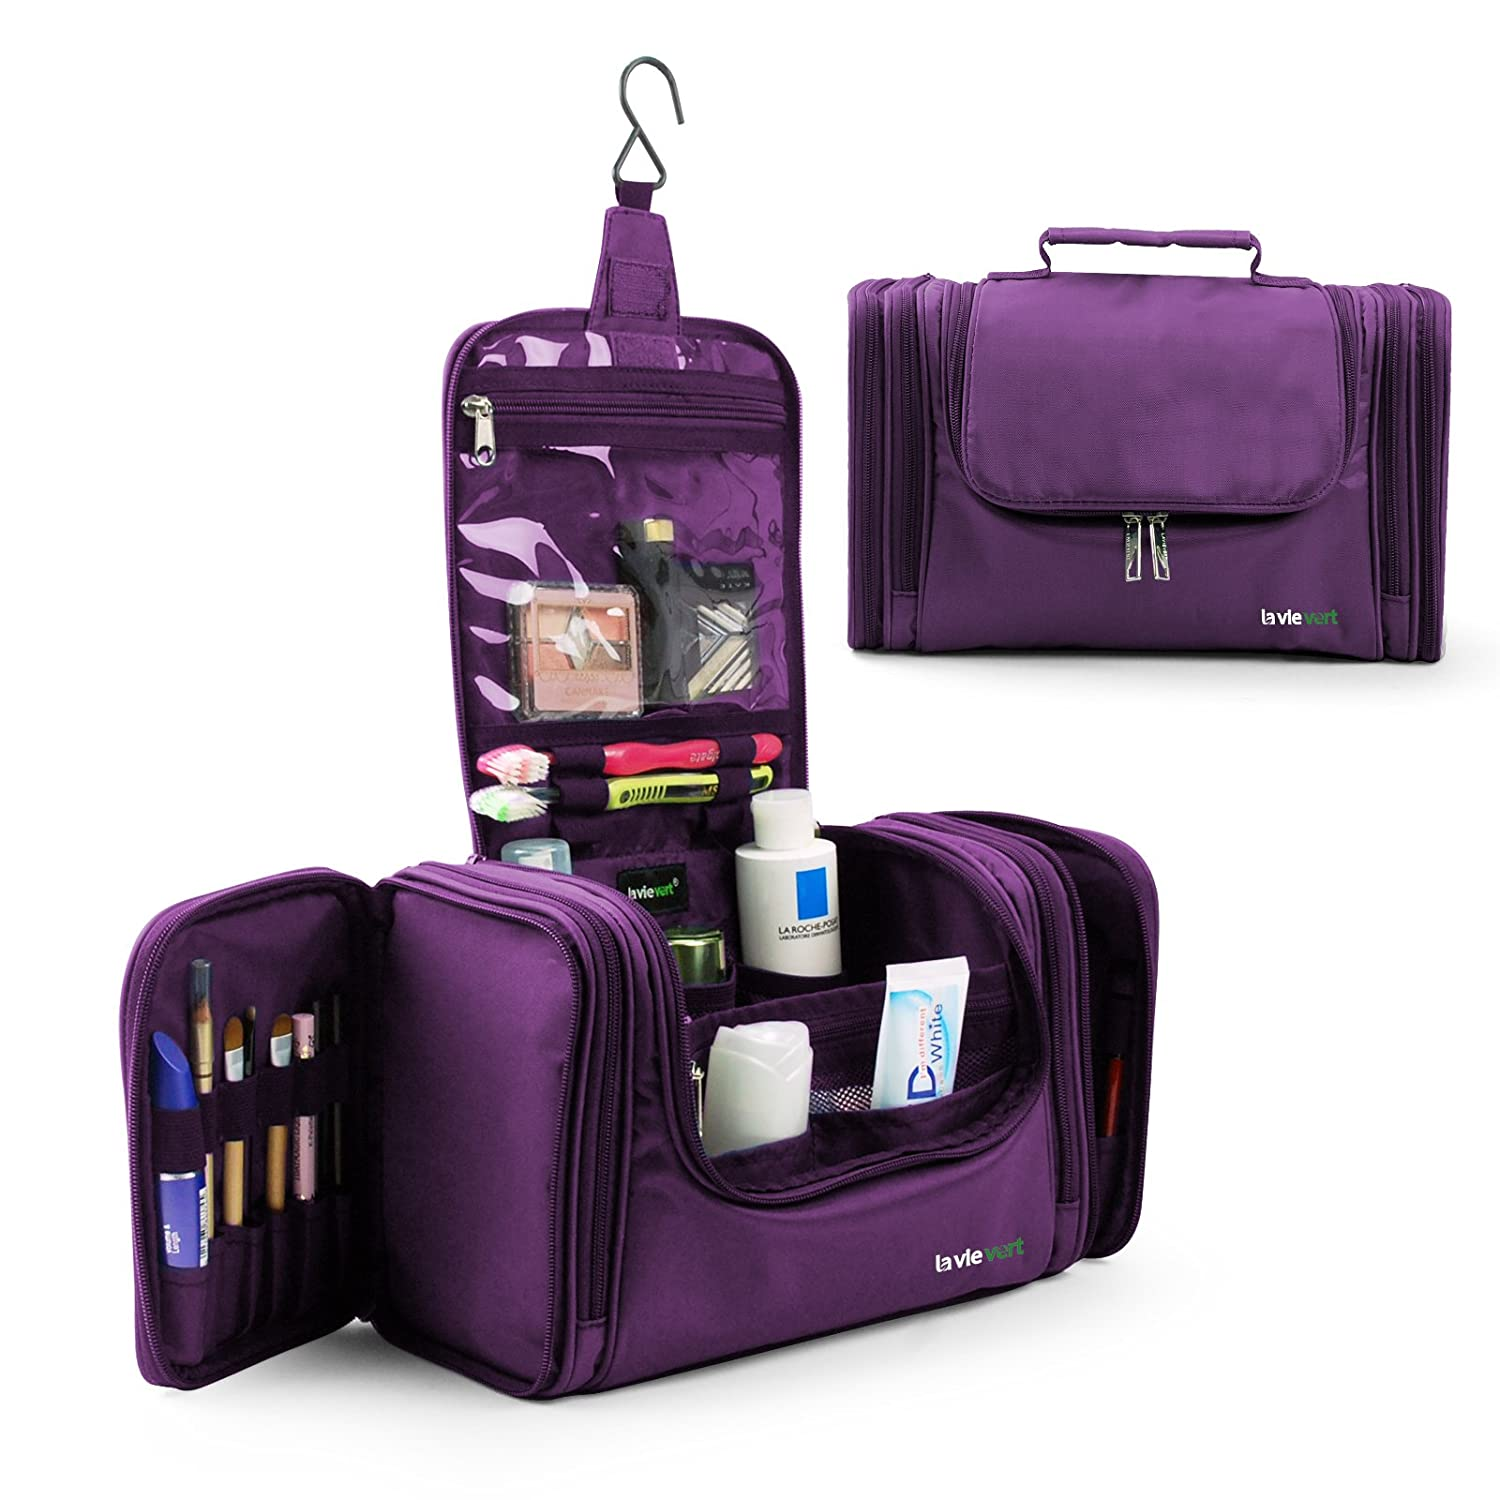 Lavievert Toiletry Bag/Makeup Organizer/Cosmetic Bag/Portable Travel Kit Organizer/Household Storage Pack/Bathroom Storage with Hanging for Business, Vacation, Household - Purple